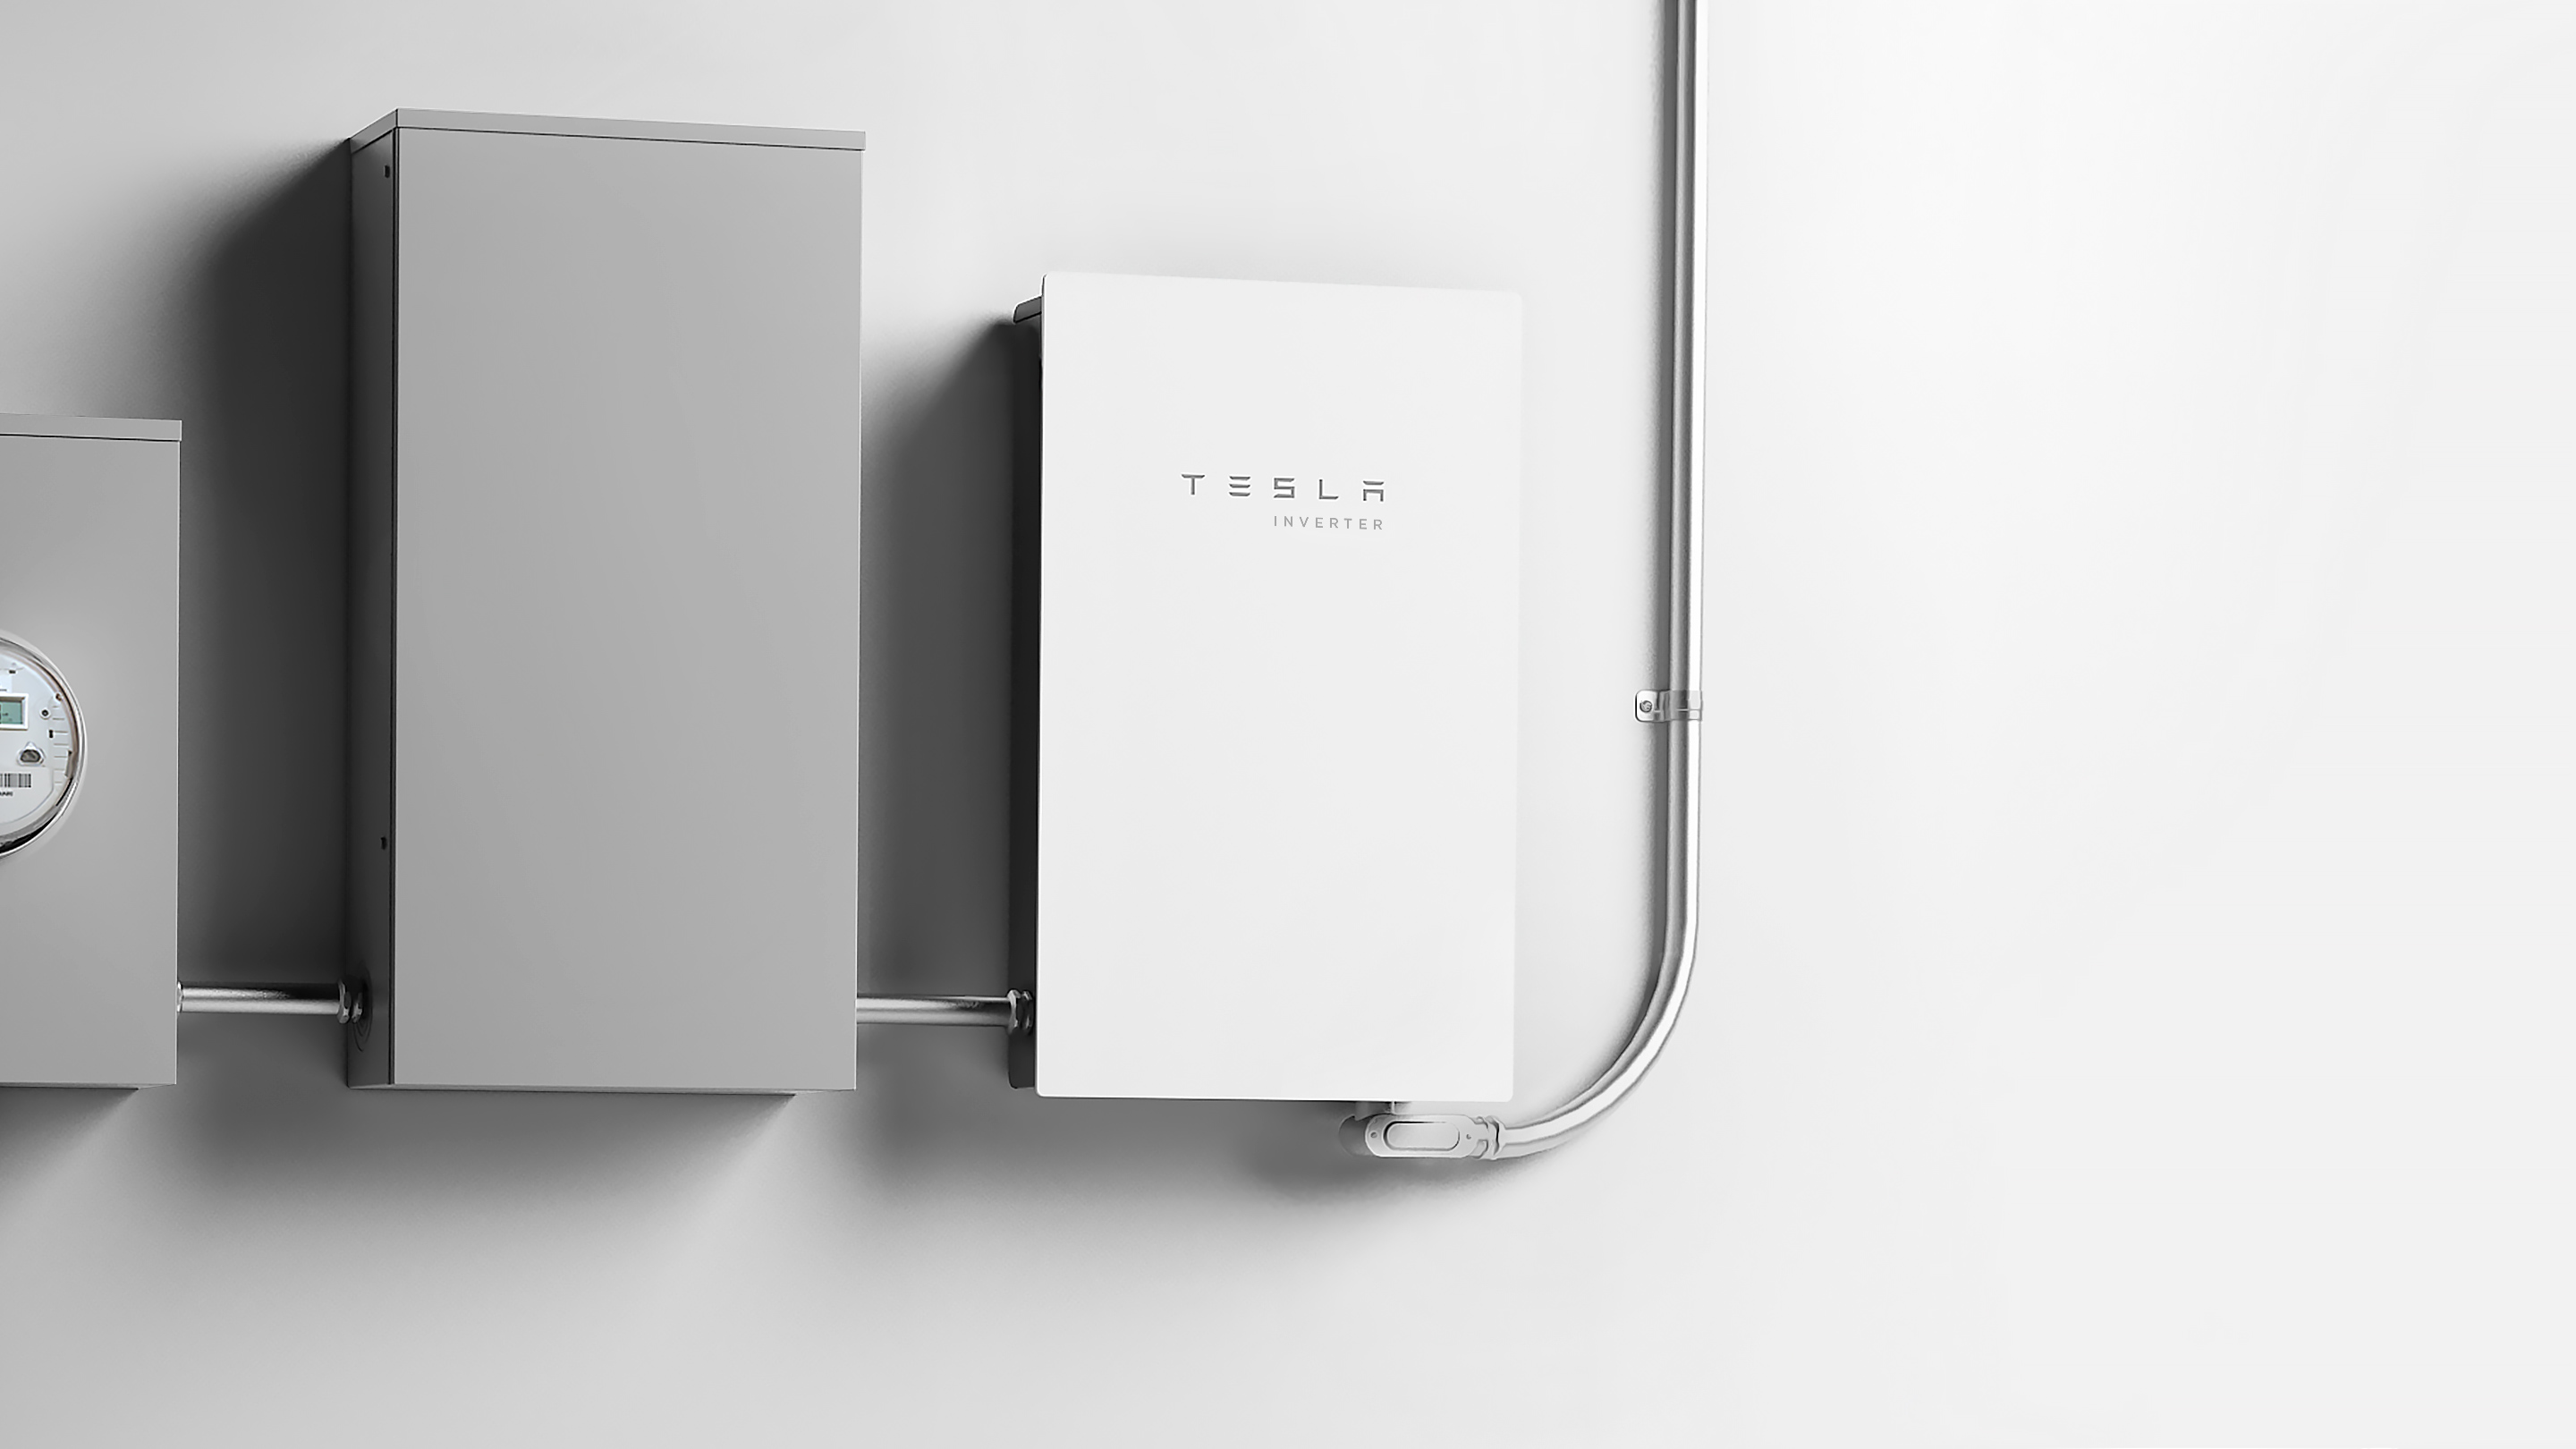 Tesla released a solar inverter for home owners. The point of view of a solar installer.